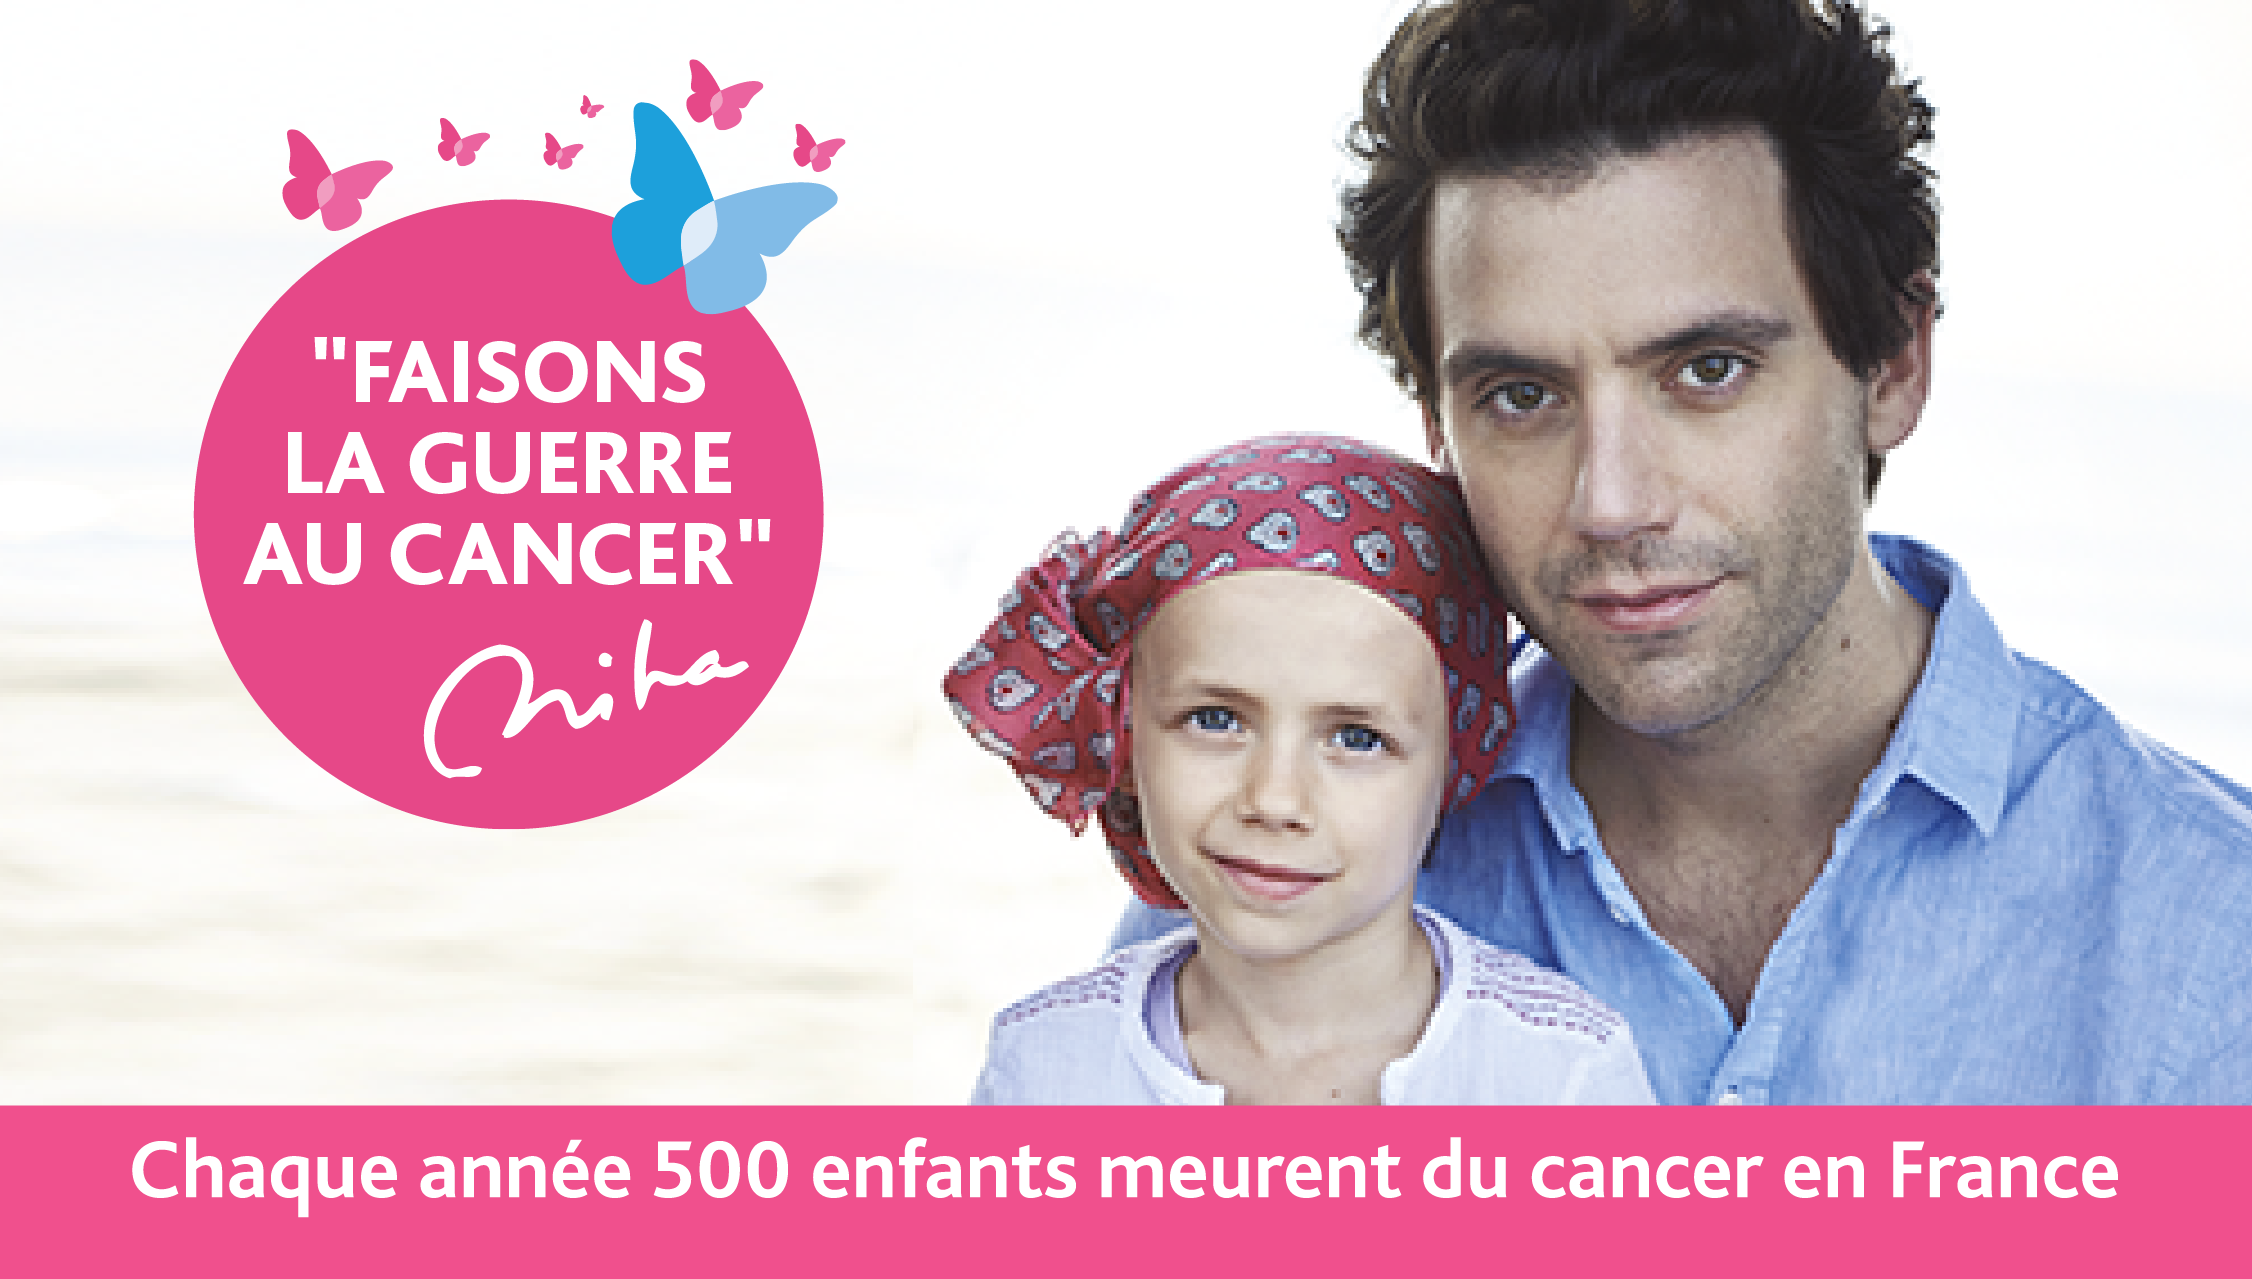 b1eccd3a7 Imagine for Margo - Children without Cancer